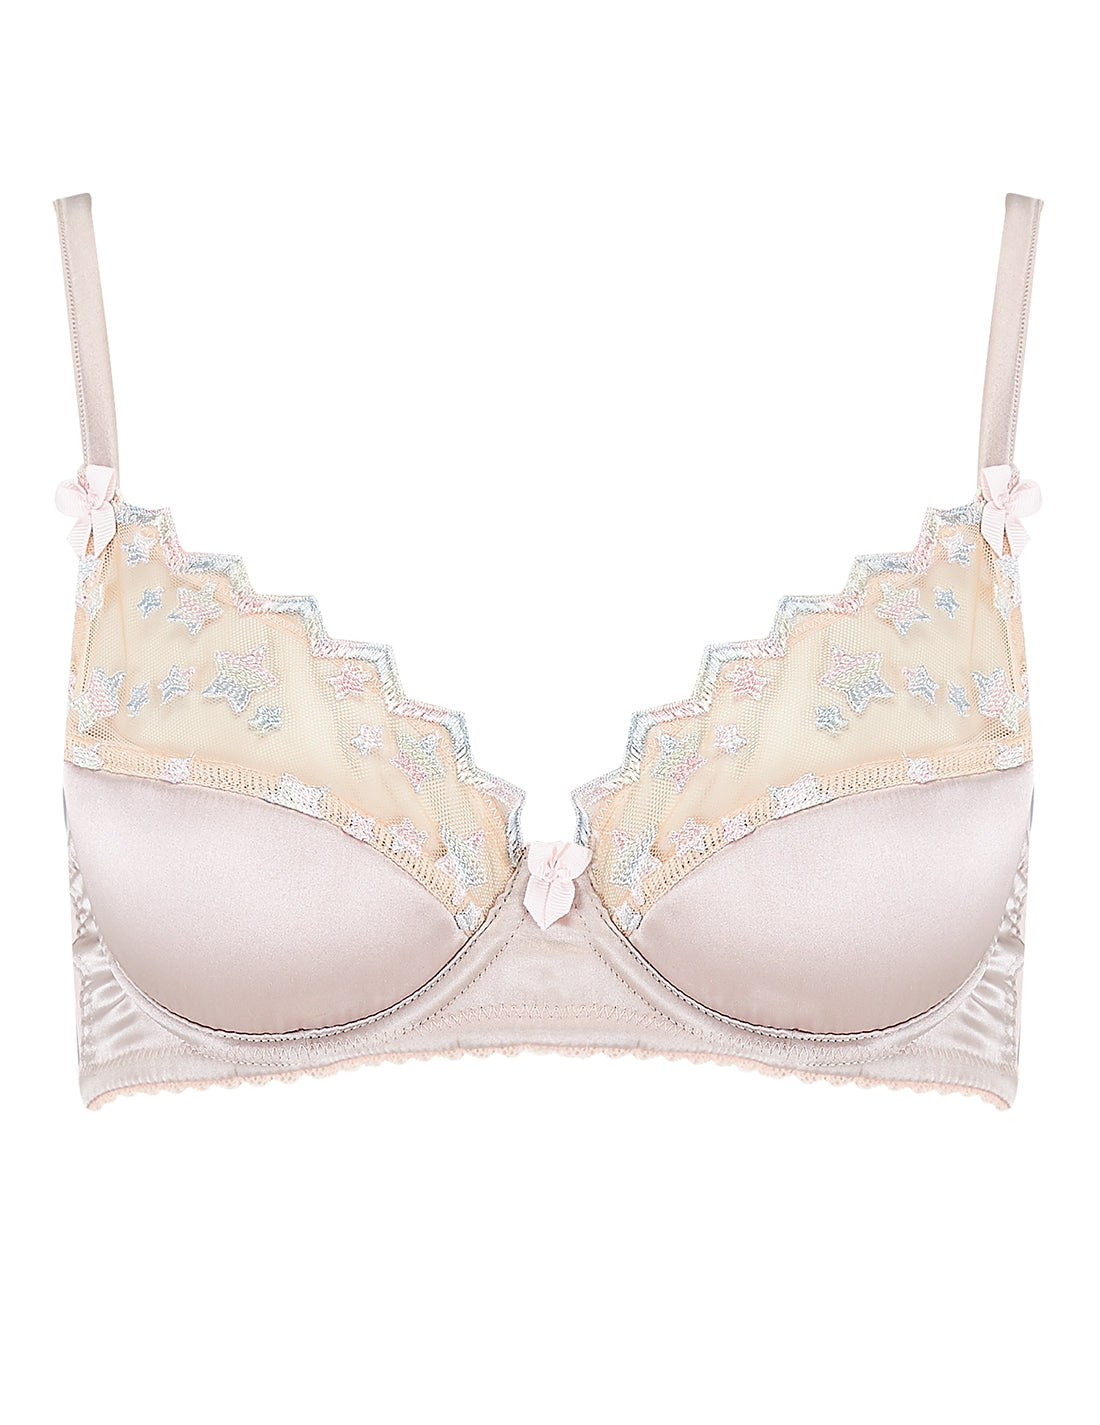 Nude Lace Stars Gepolsterter Push-Up BH | Mimi Holliday Sexy Dessous